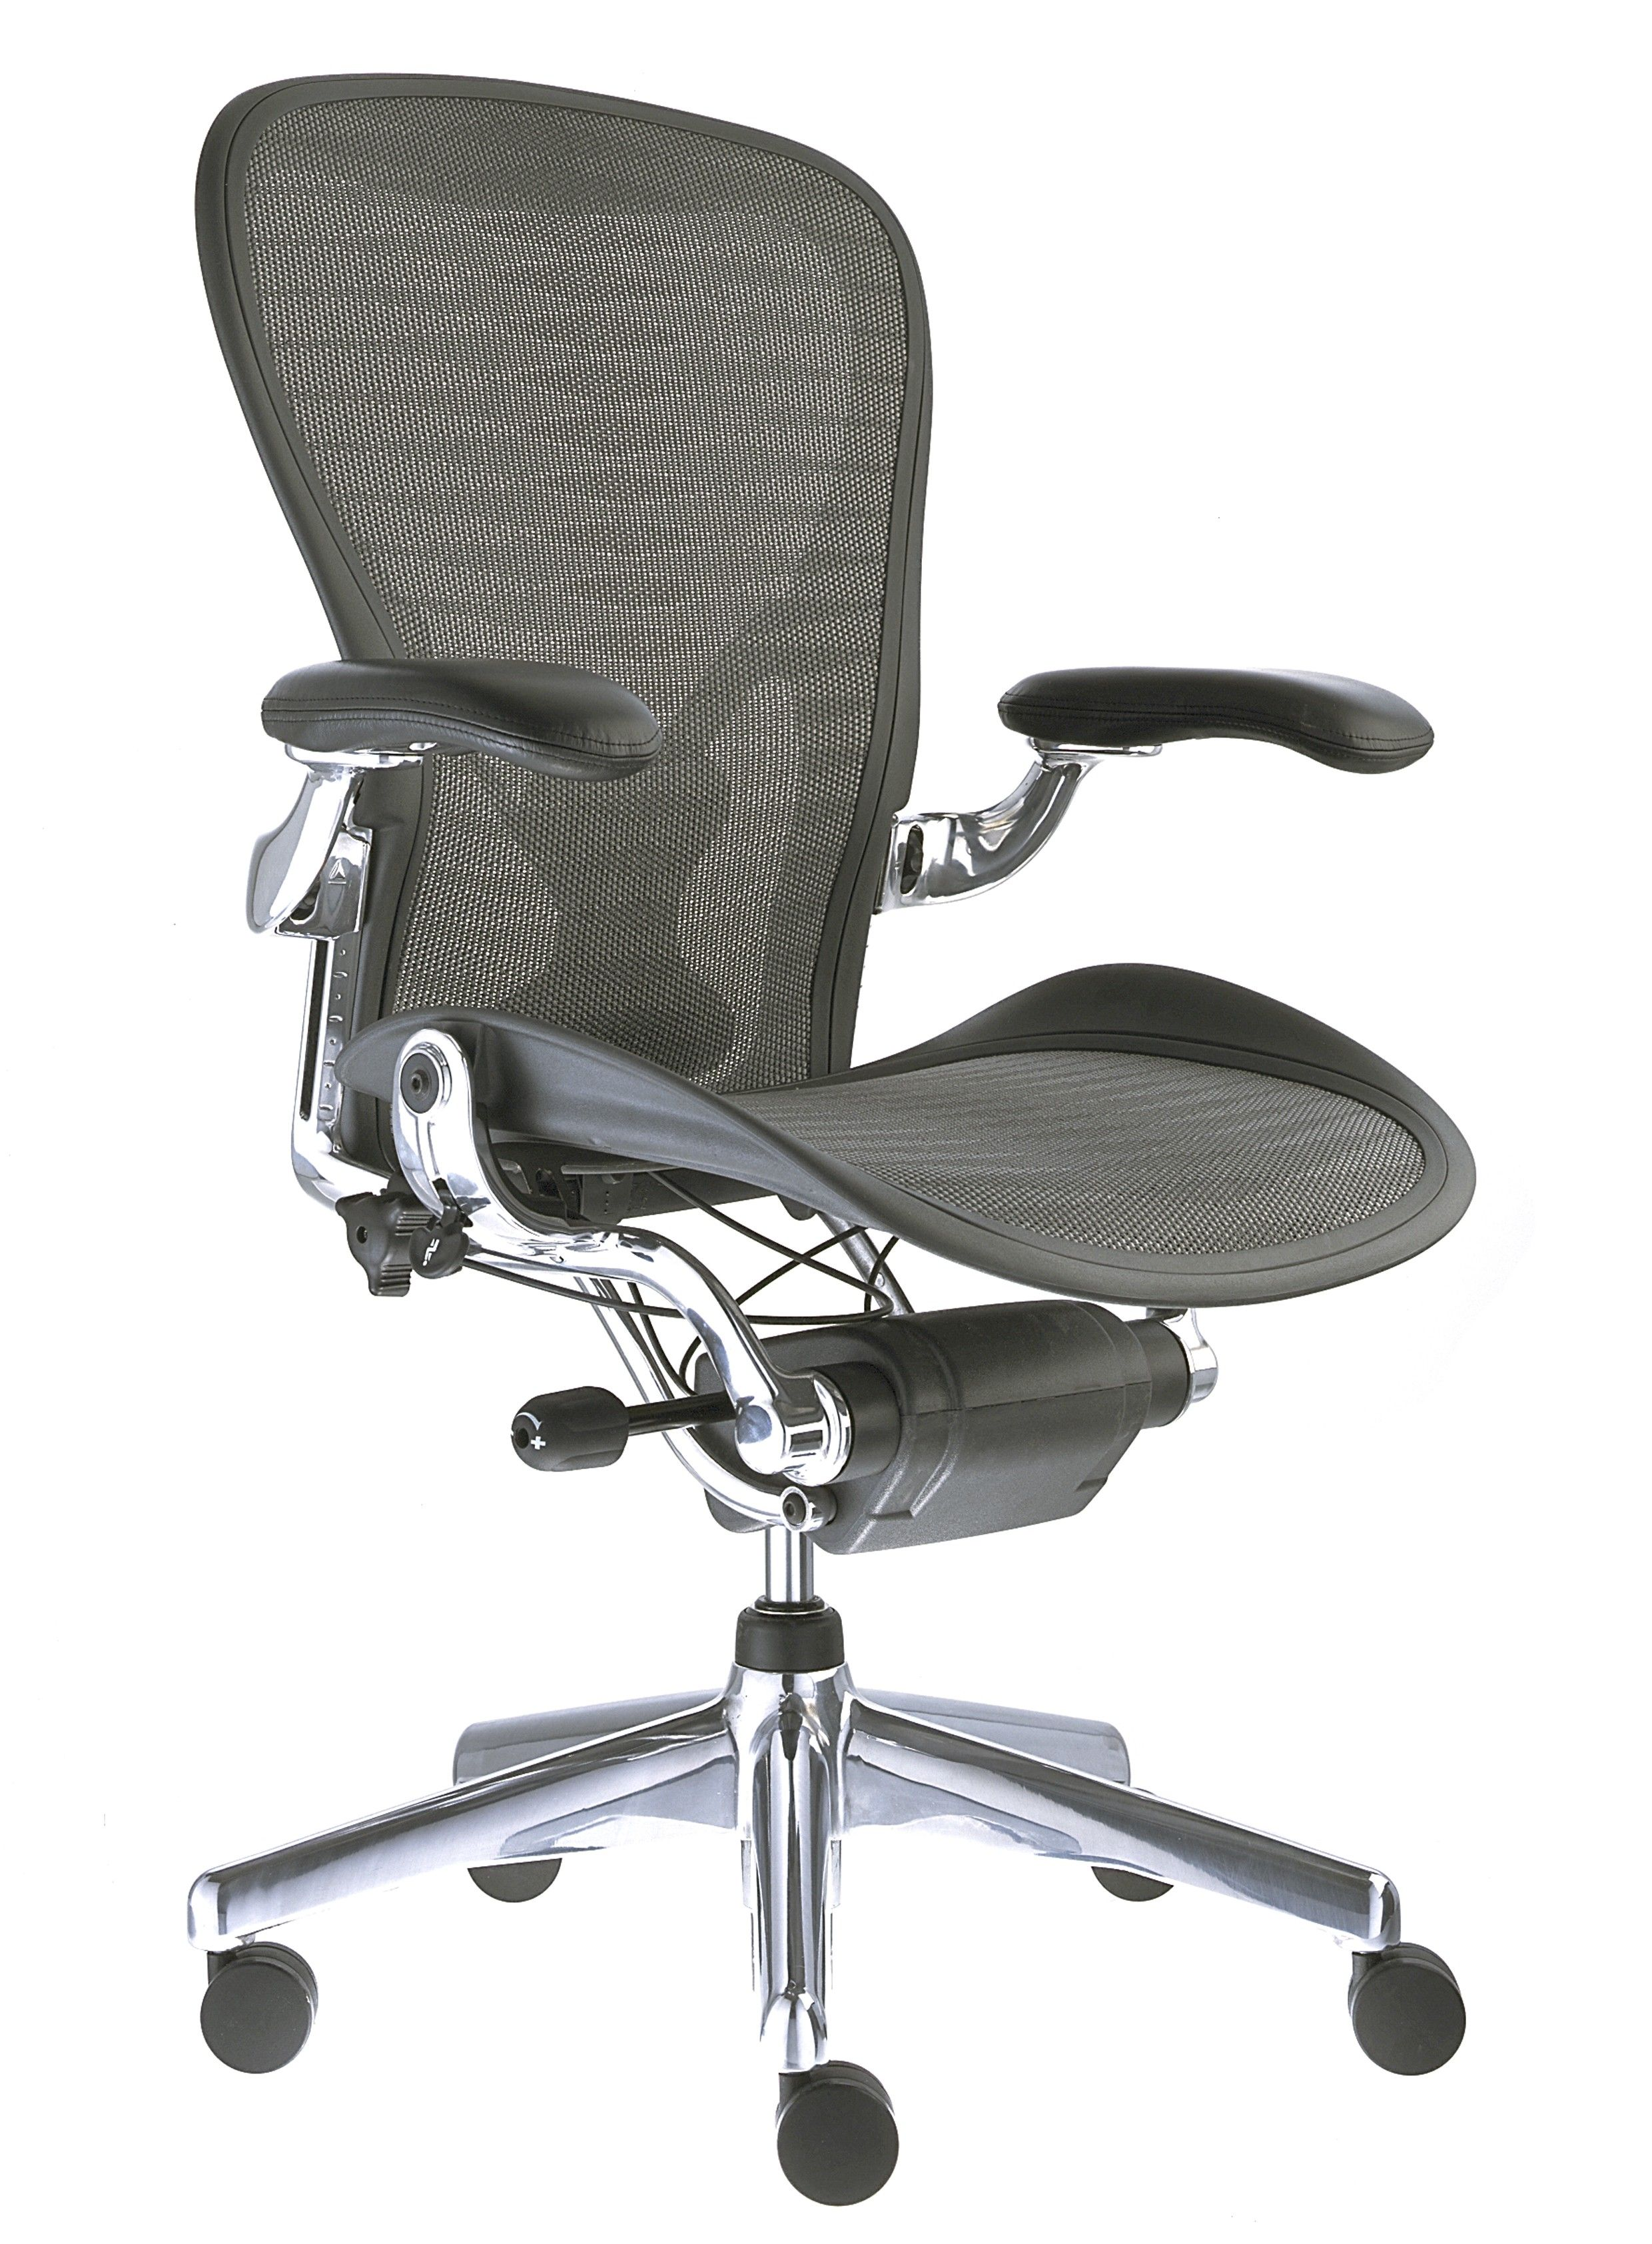 my next desk chair has to be a herman miller aeron chair